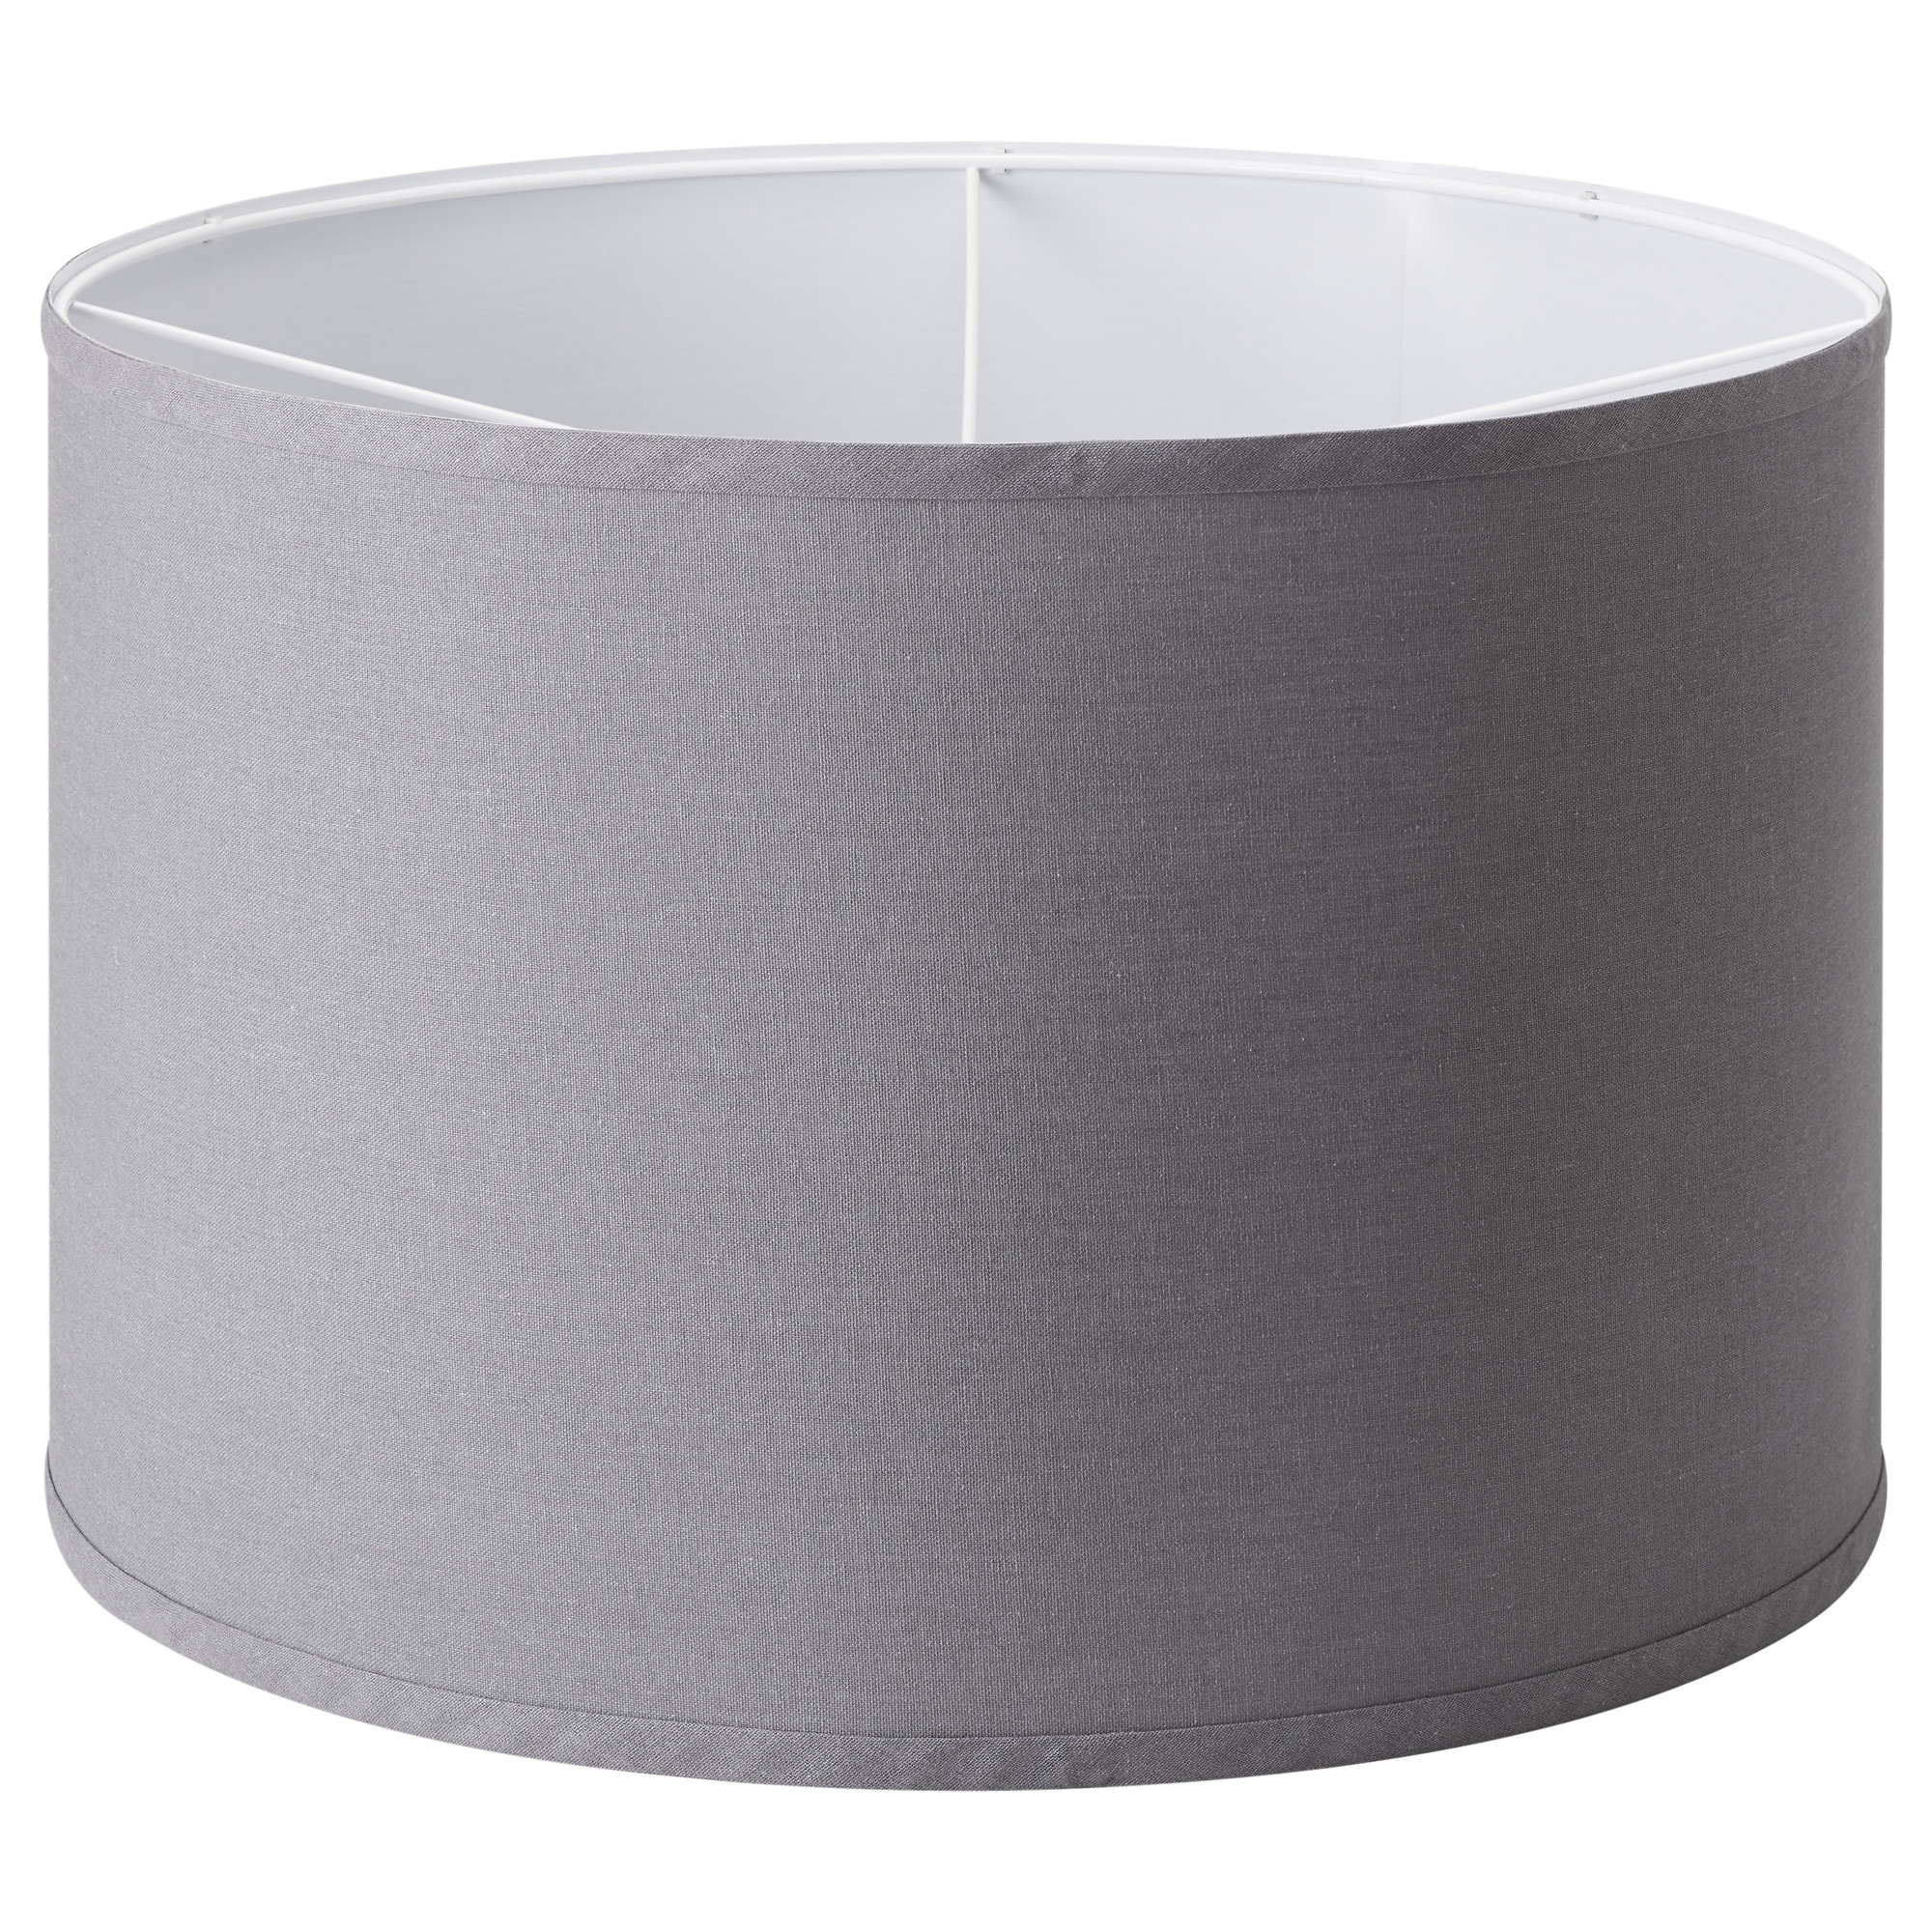 Lamp Shades - IKEA:RULLAN shade, gray Height: 9